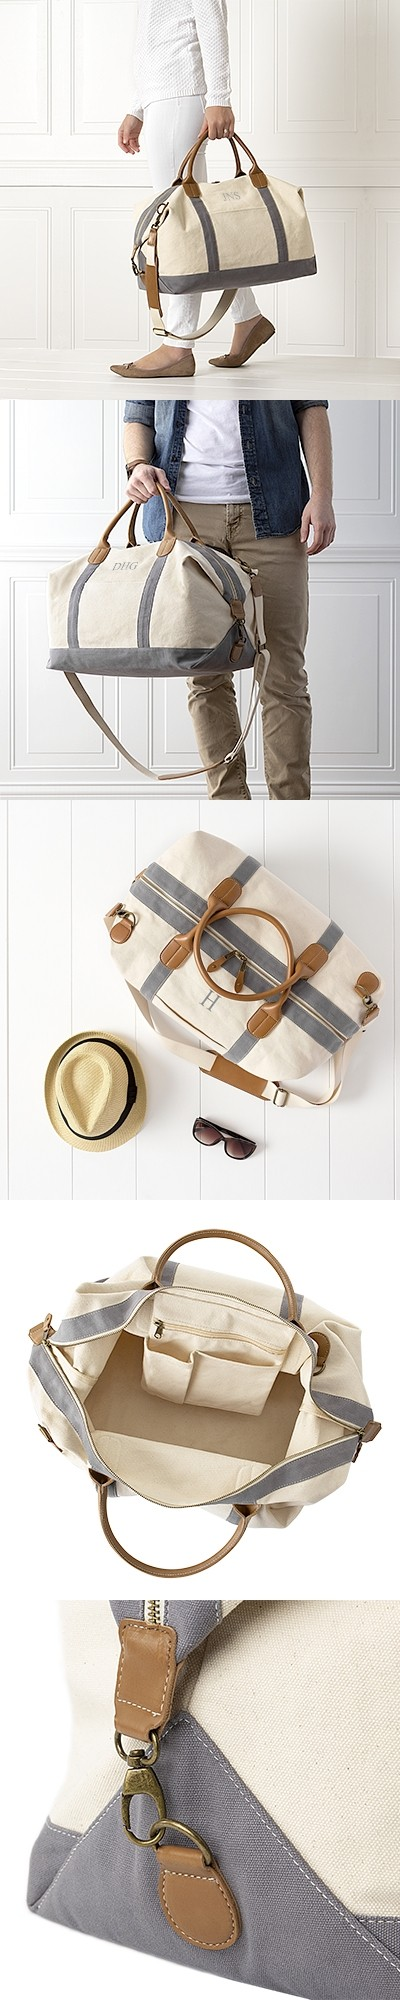 Cathy's Concepts Personalizable Oversized Transport Weekender